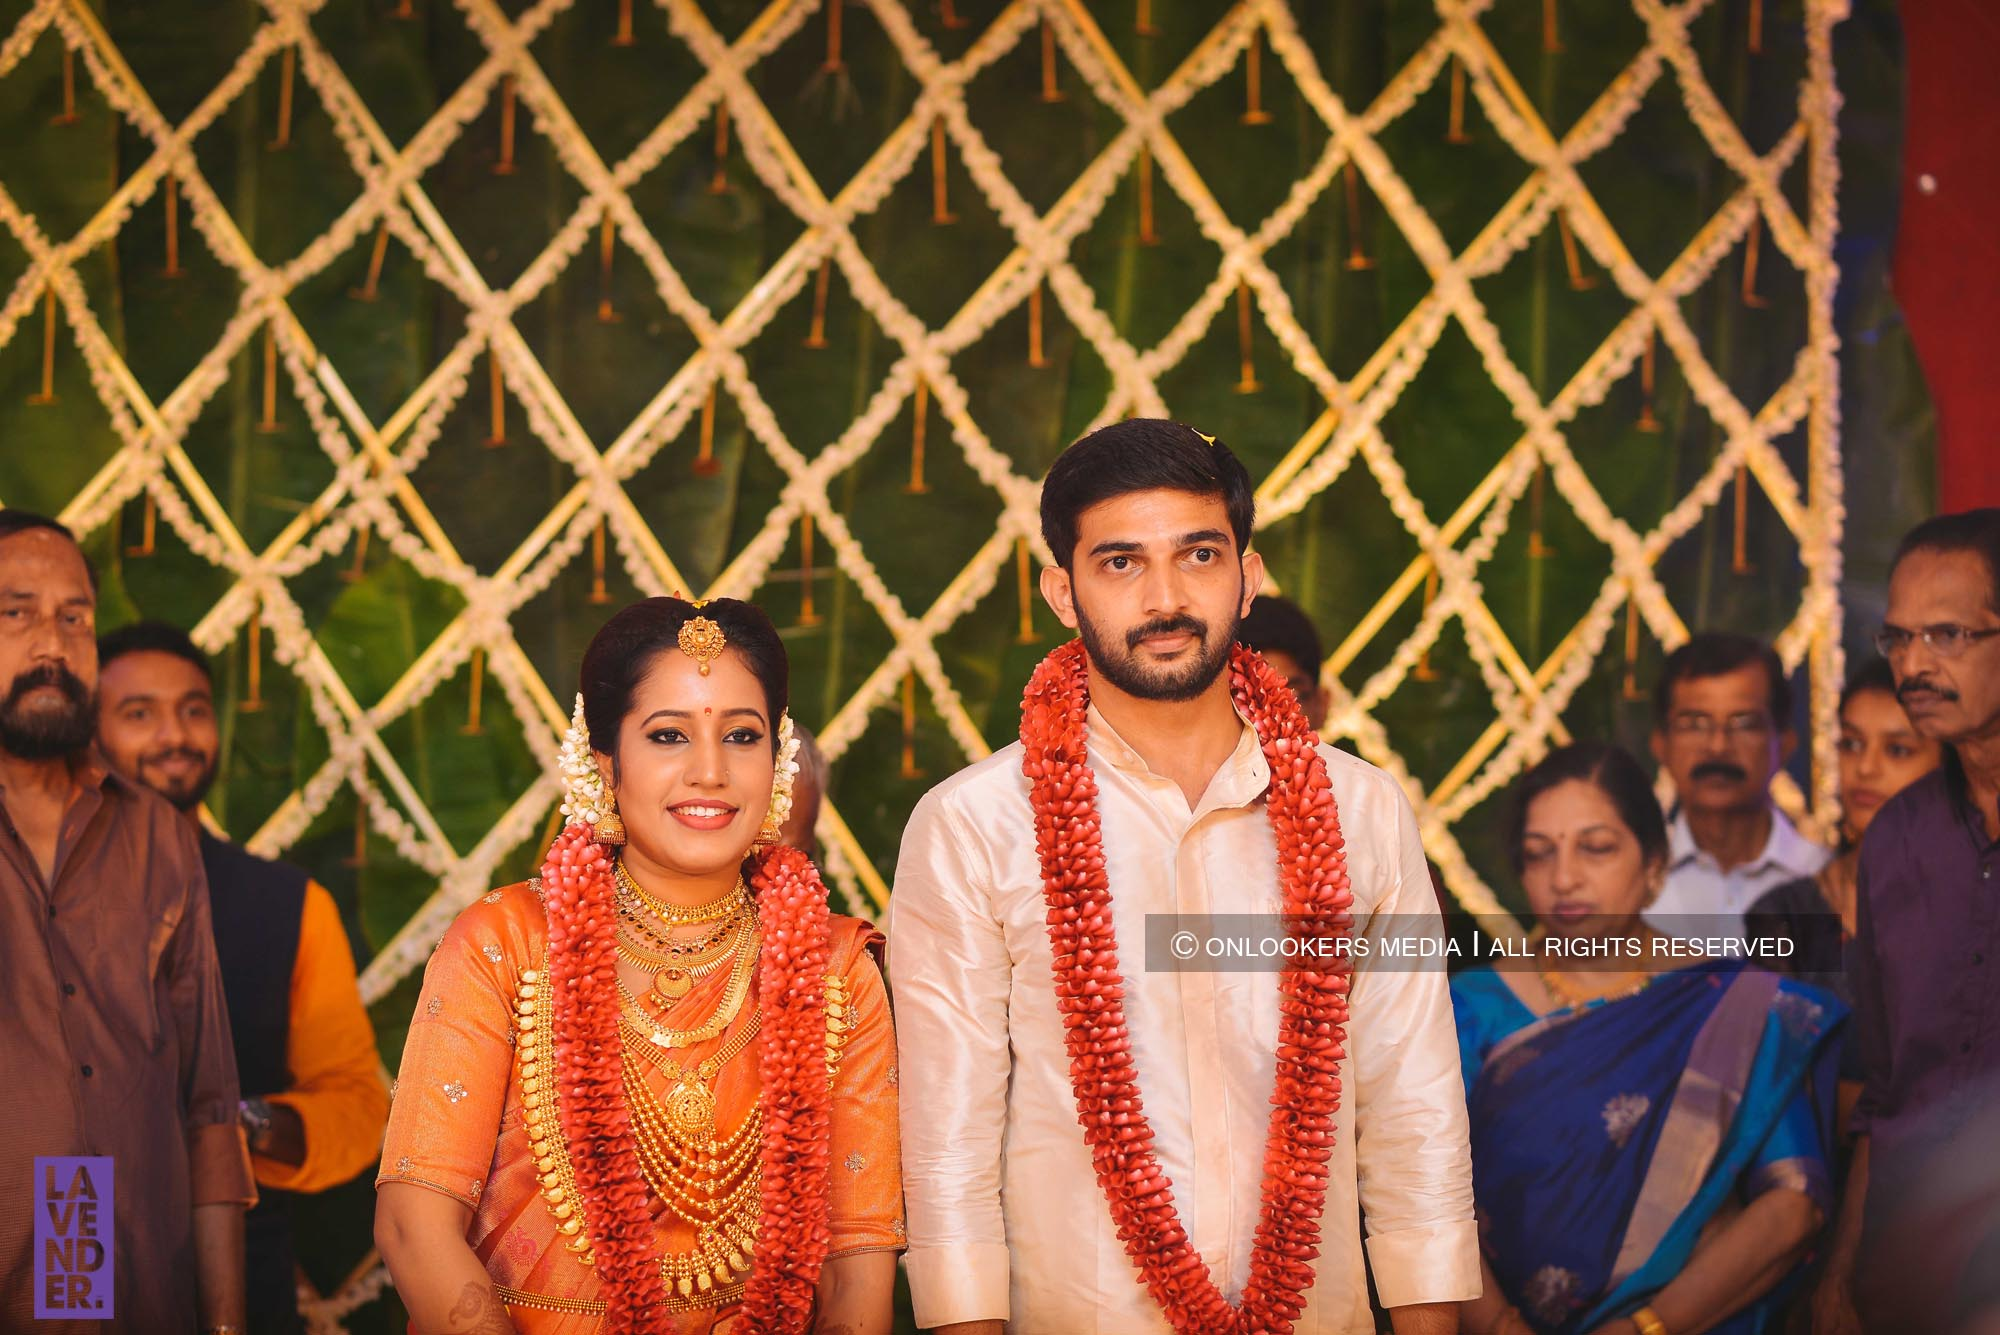 http://onlookersmedia.in/wp-content/uploads/2018/05/sreejith-vijay-wedding-stills-images-54.jpg